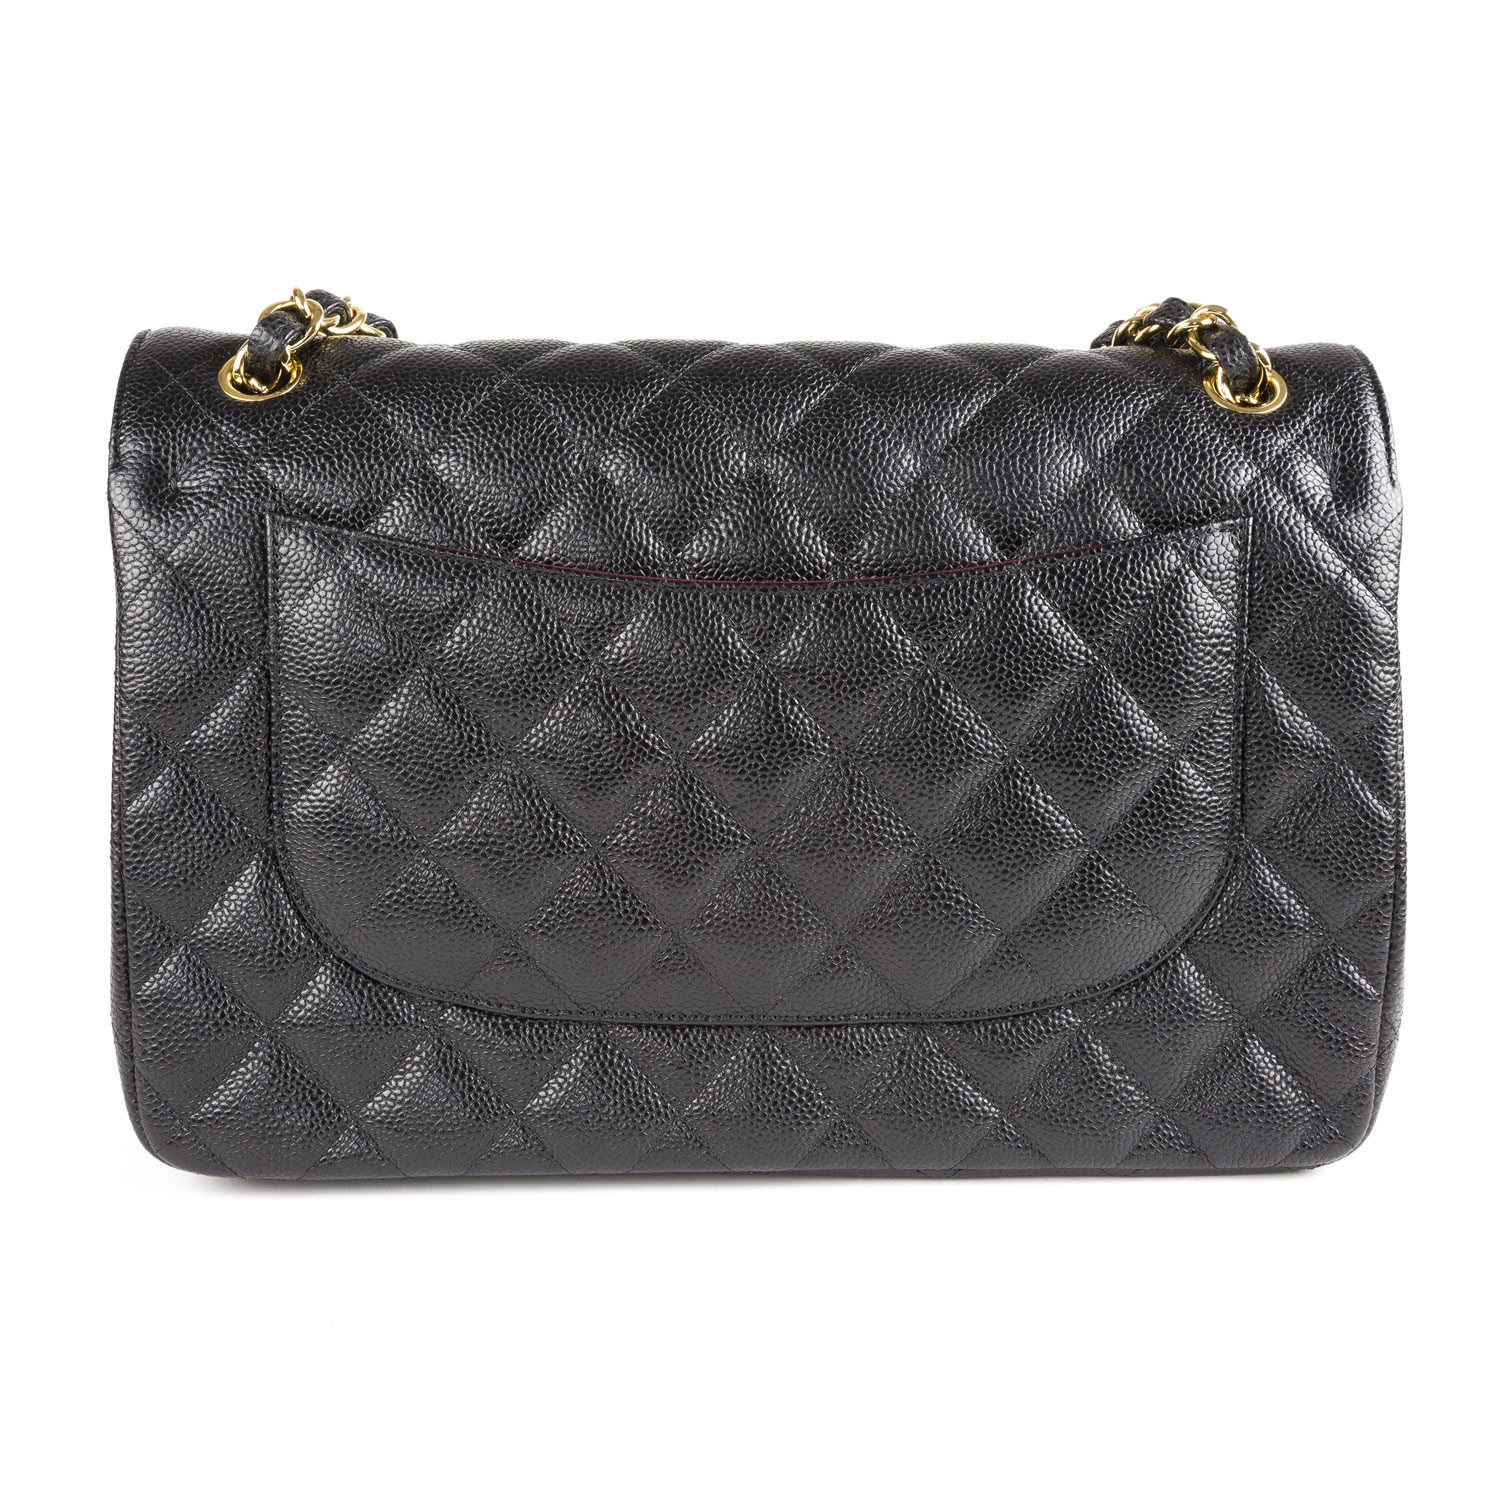 716273df2418 CHANEL Black Caviar Leather Jumbo Classic Flap Bag Gold Hardware $6,200 NEW